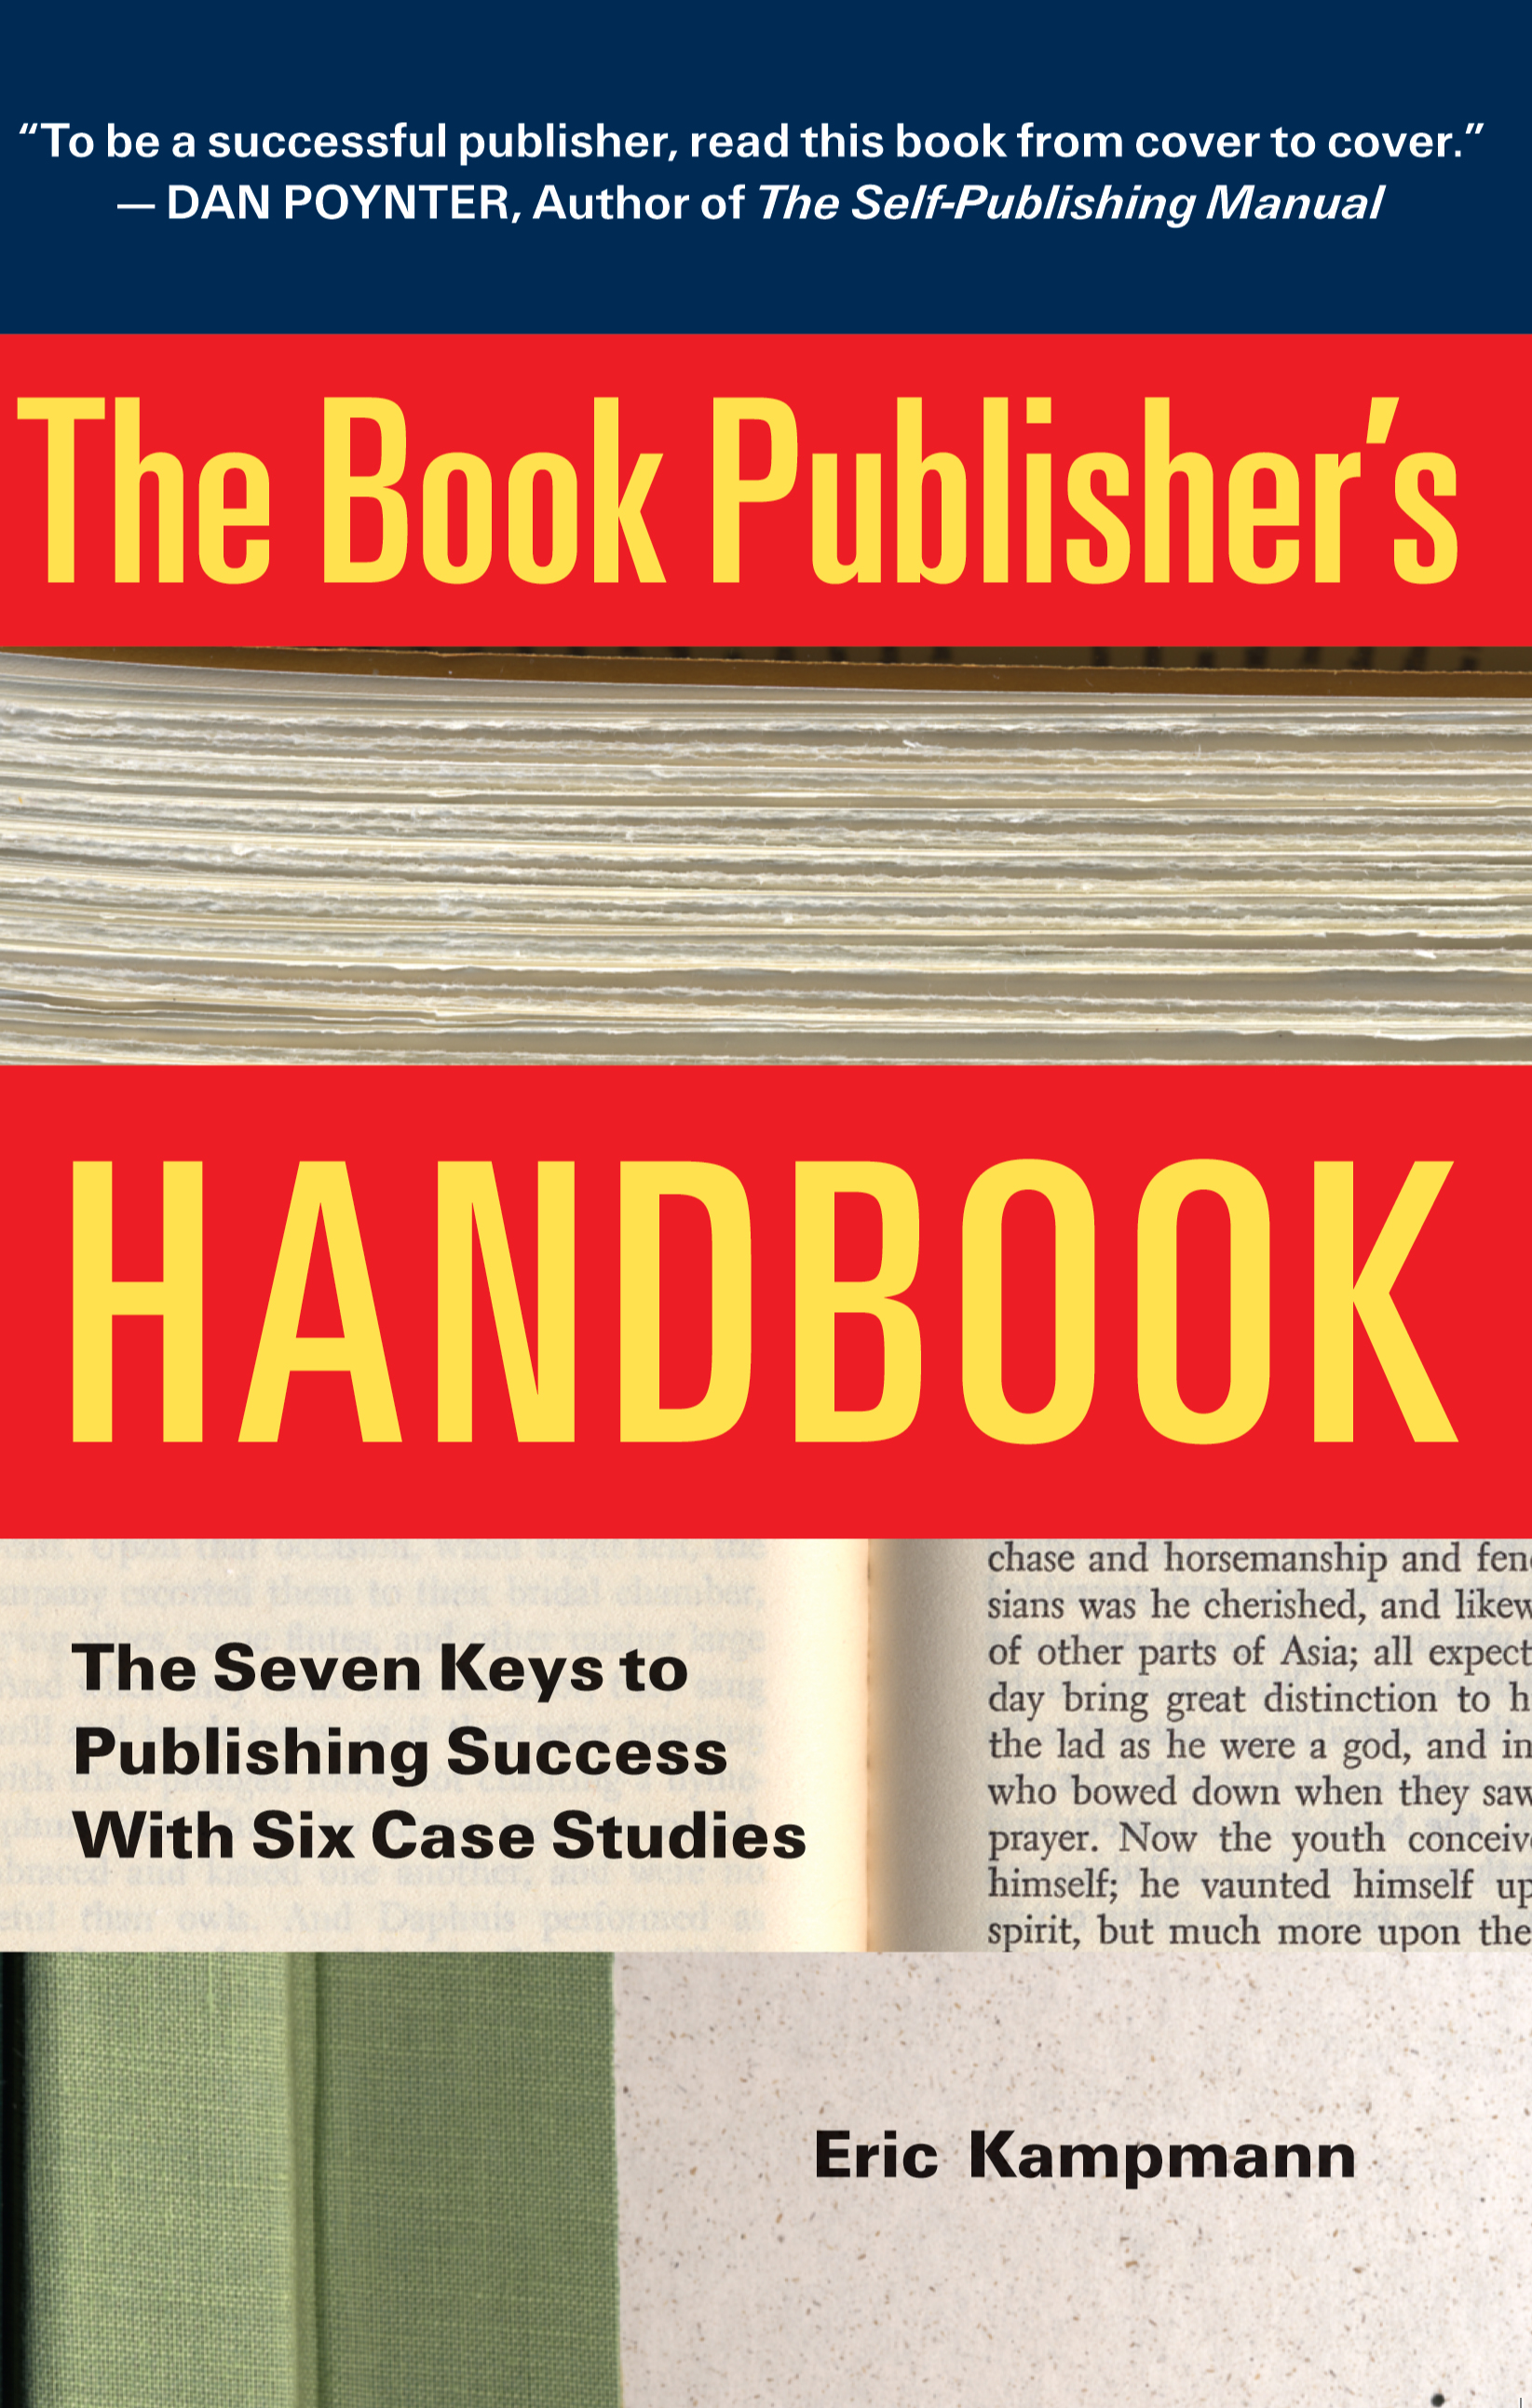 The Book Publisher's Handbook